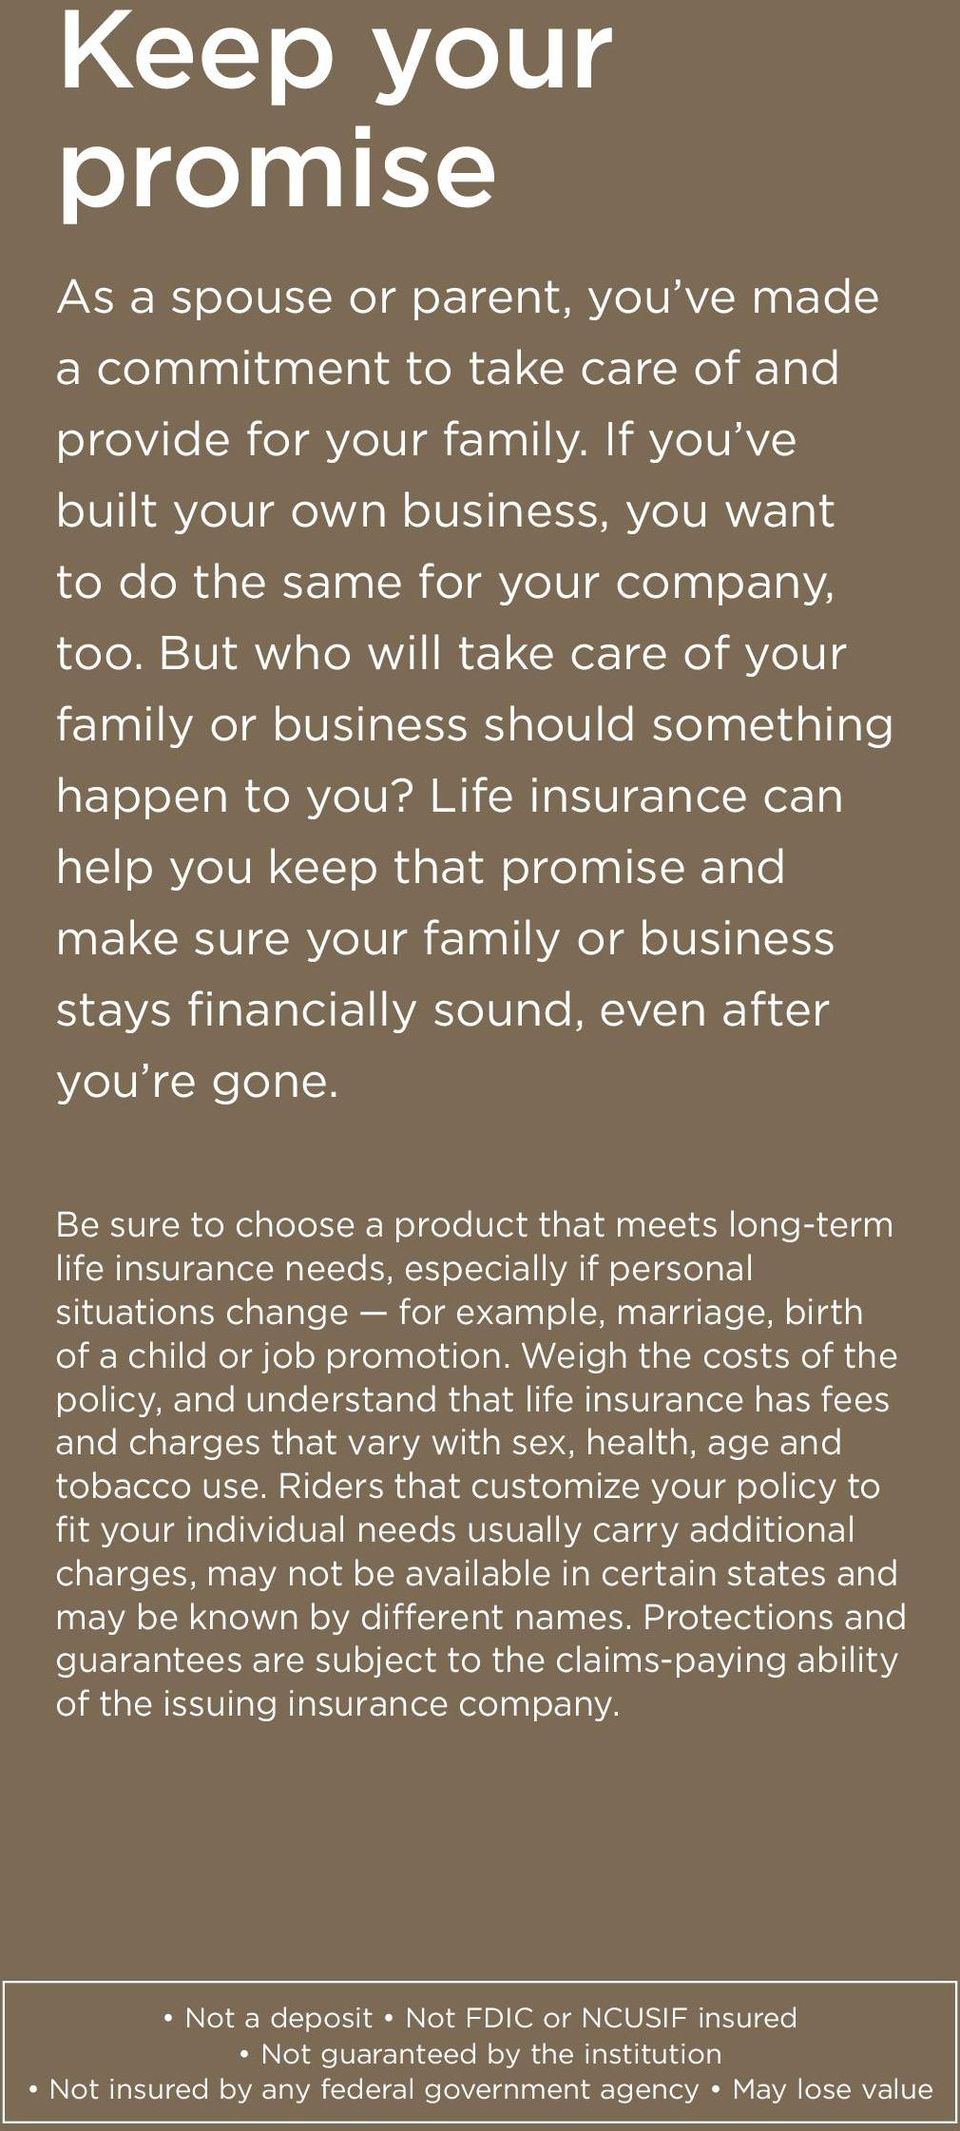 Life insurance can help you keep that promise and make sure your family or business stays financially sound, even after you re gone.